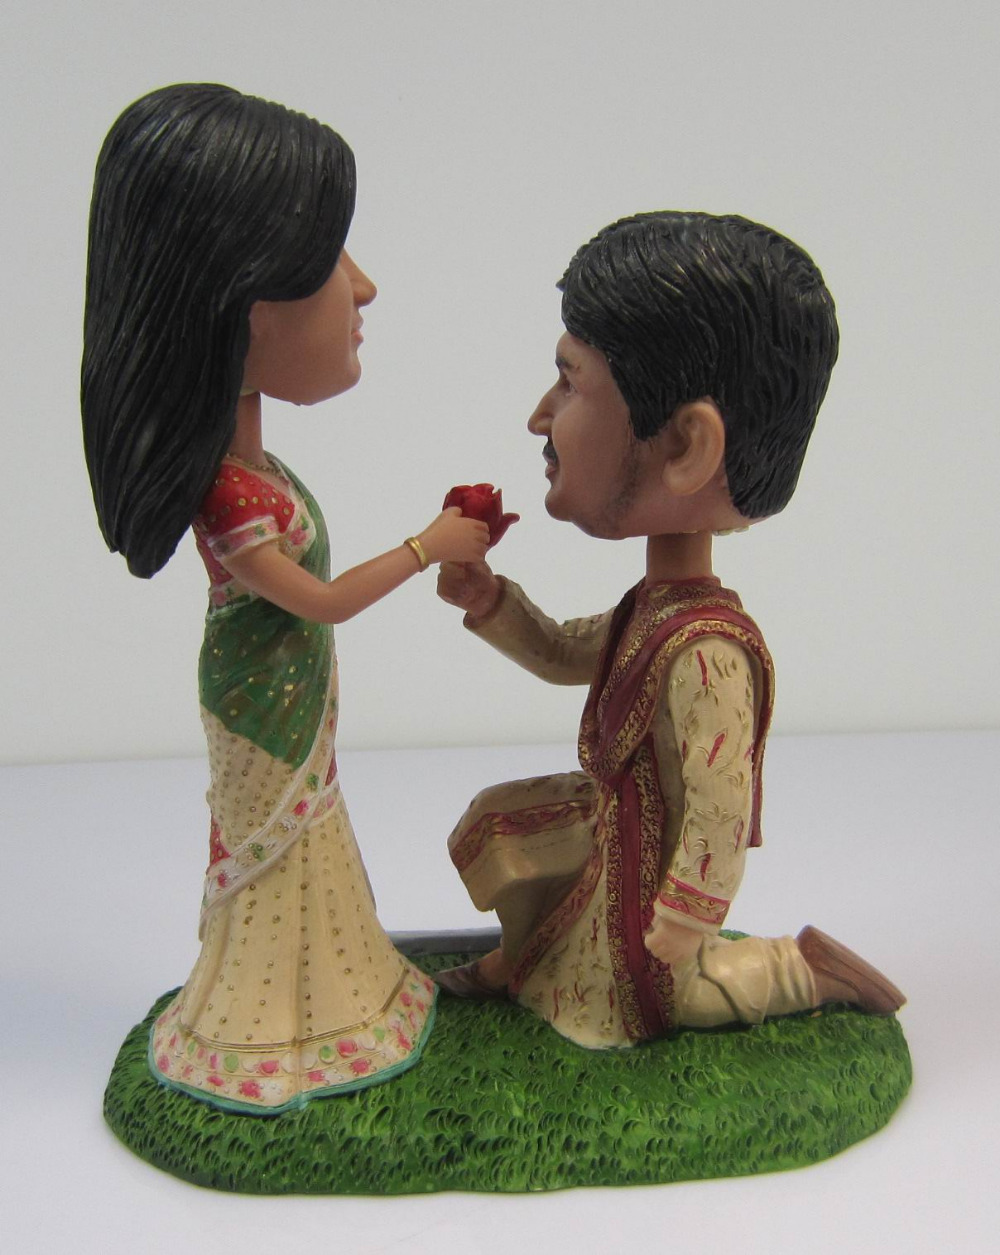 Wedding decoration wholesale india gallery wedding dress fedex free shipping personalized bobblehead doll india propose fedex free shipping personalized bobblehead doll india propose junglespirit Image collections